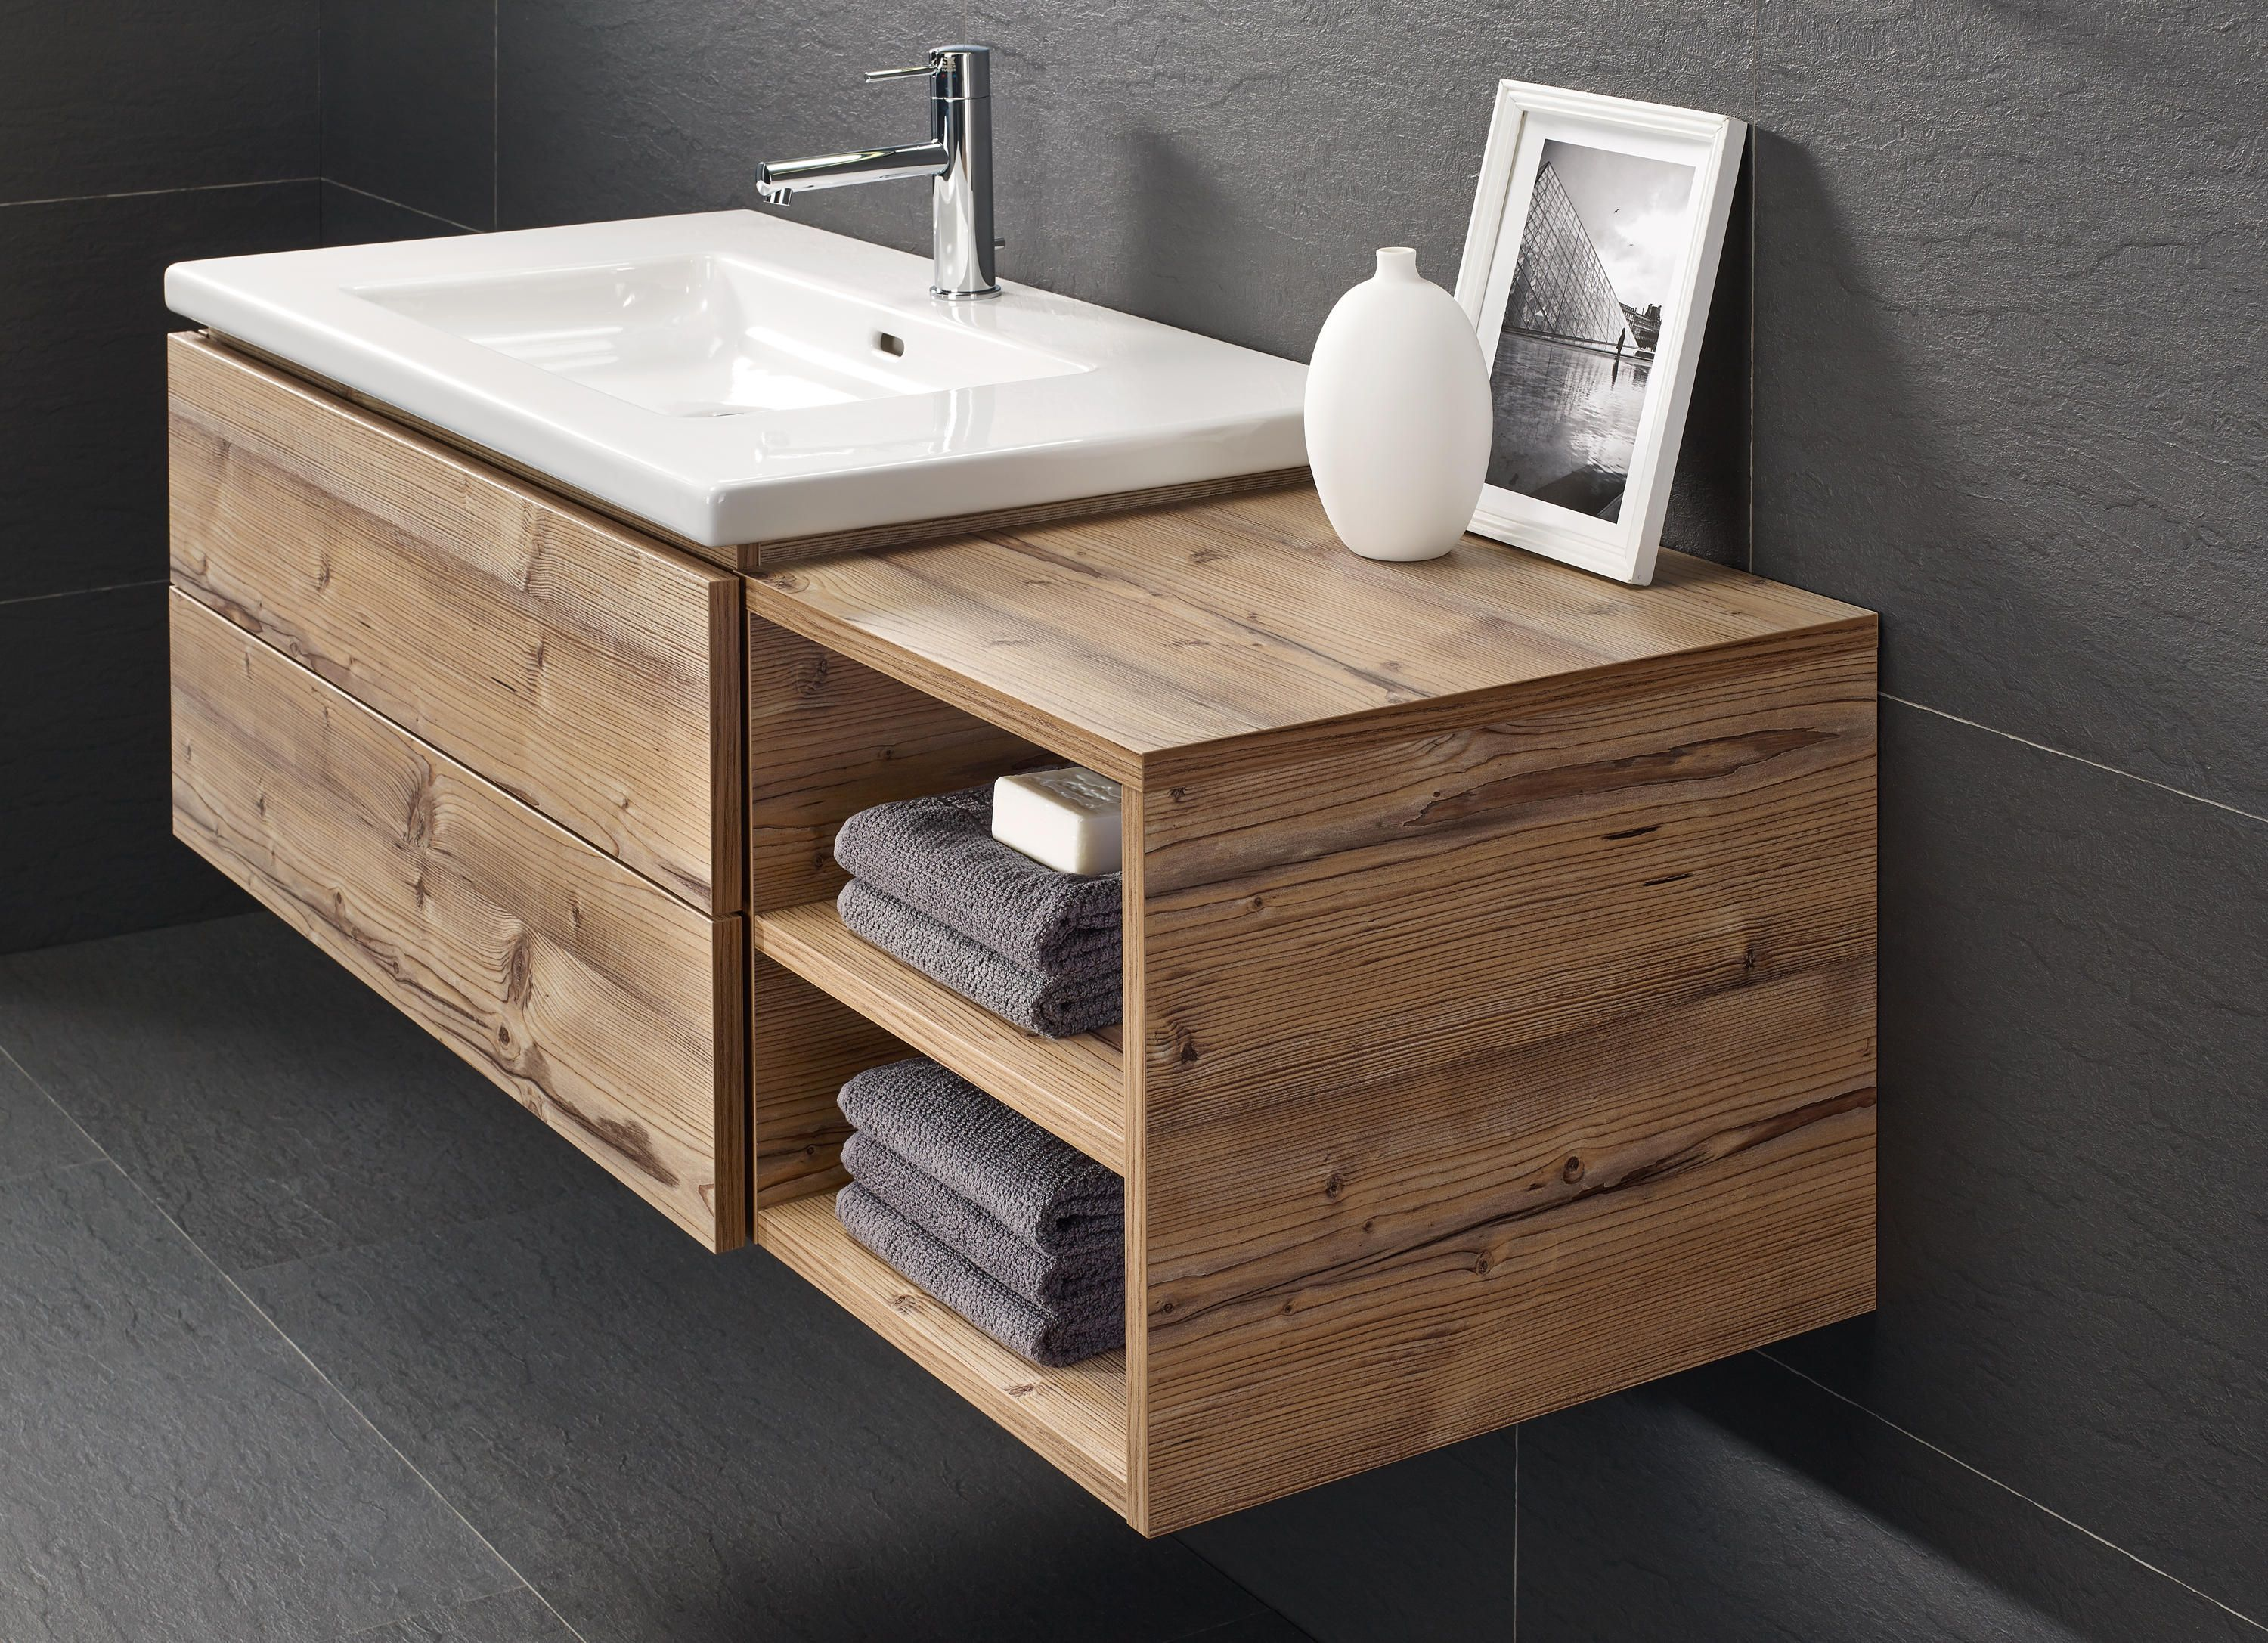 Badezimmer Badmobel Badezimmermobel Badmobel Set Spiegelschrank Bad Badezimmerschrank Badspie In 2020 Reclaimed Wood Bathroom Vanity Wall Cabinet Bathroom Vanity